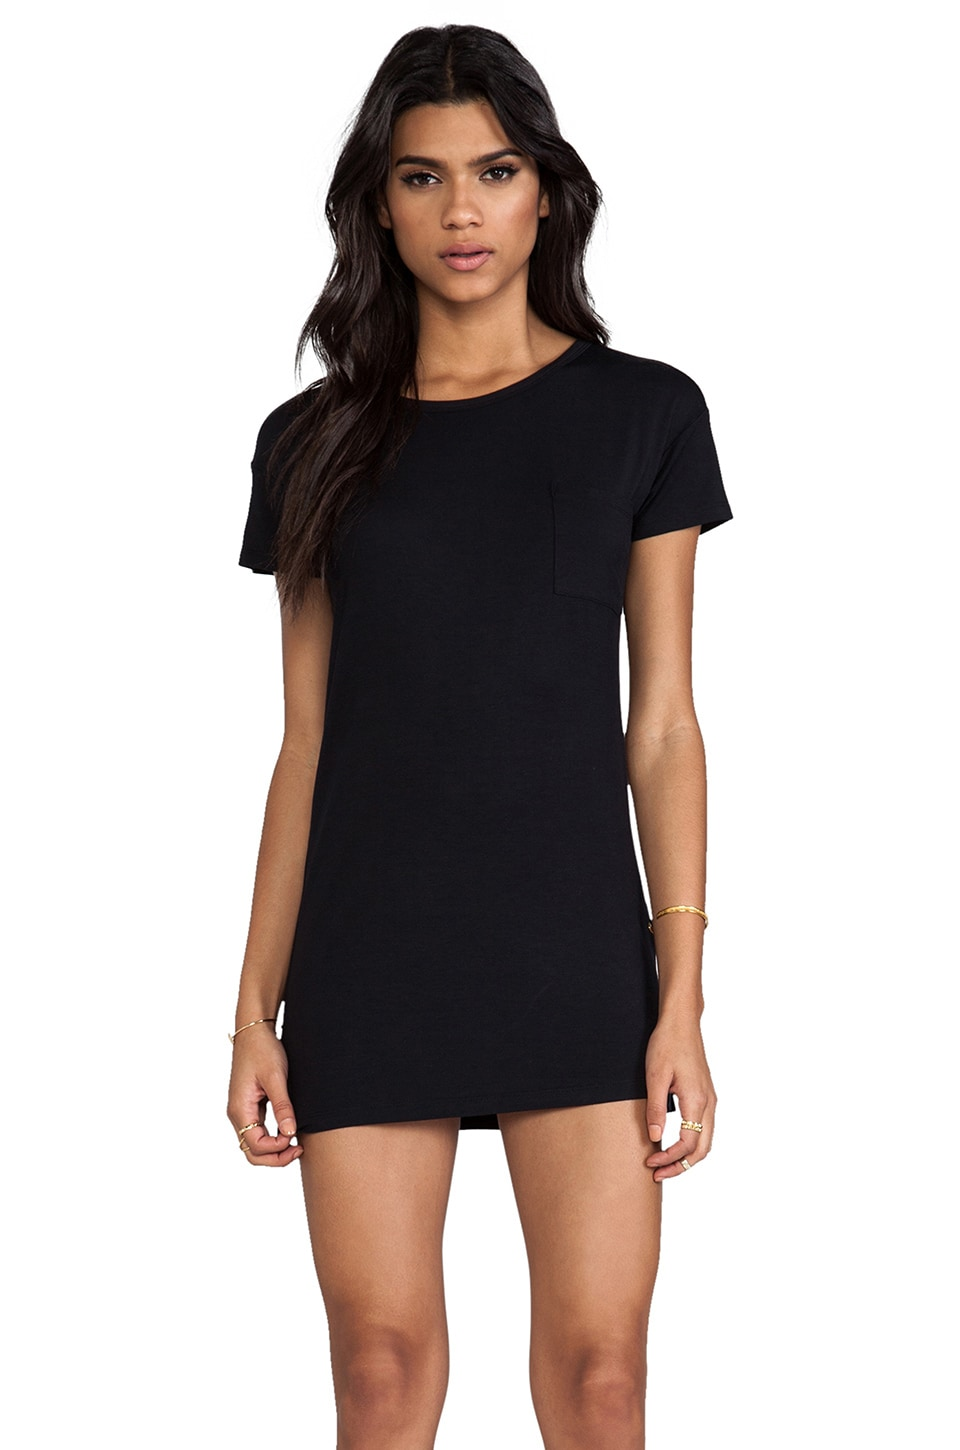 L'AMERICA Eazy Peazy Boyfriend Jersey Dress in Black